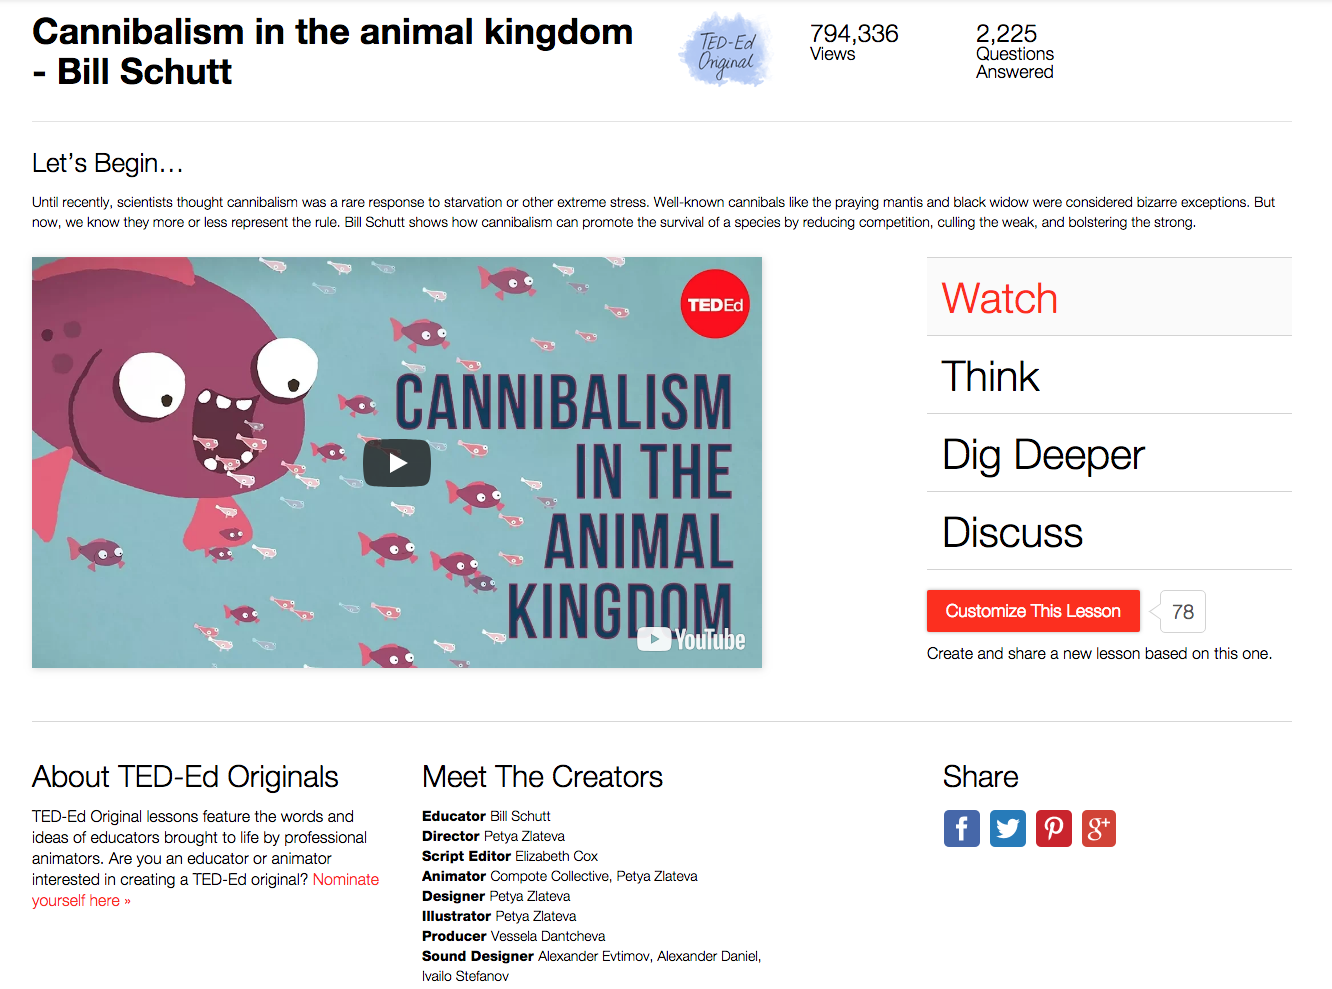 Cannibalism in the Animal Kingdom Video